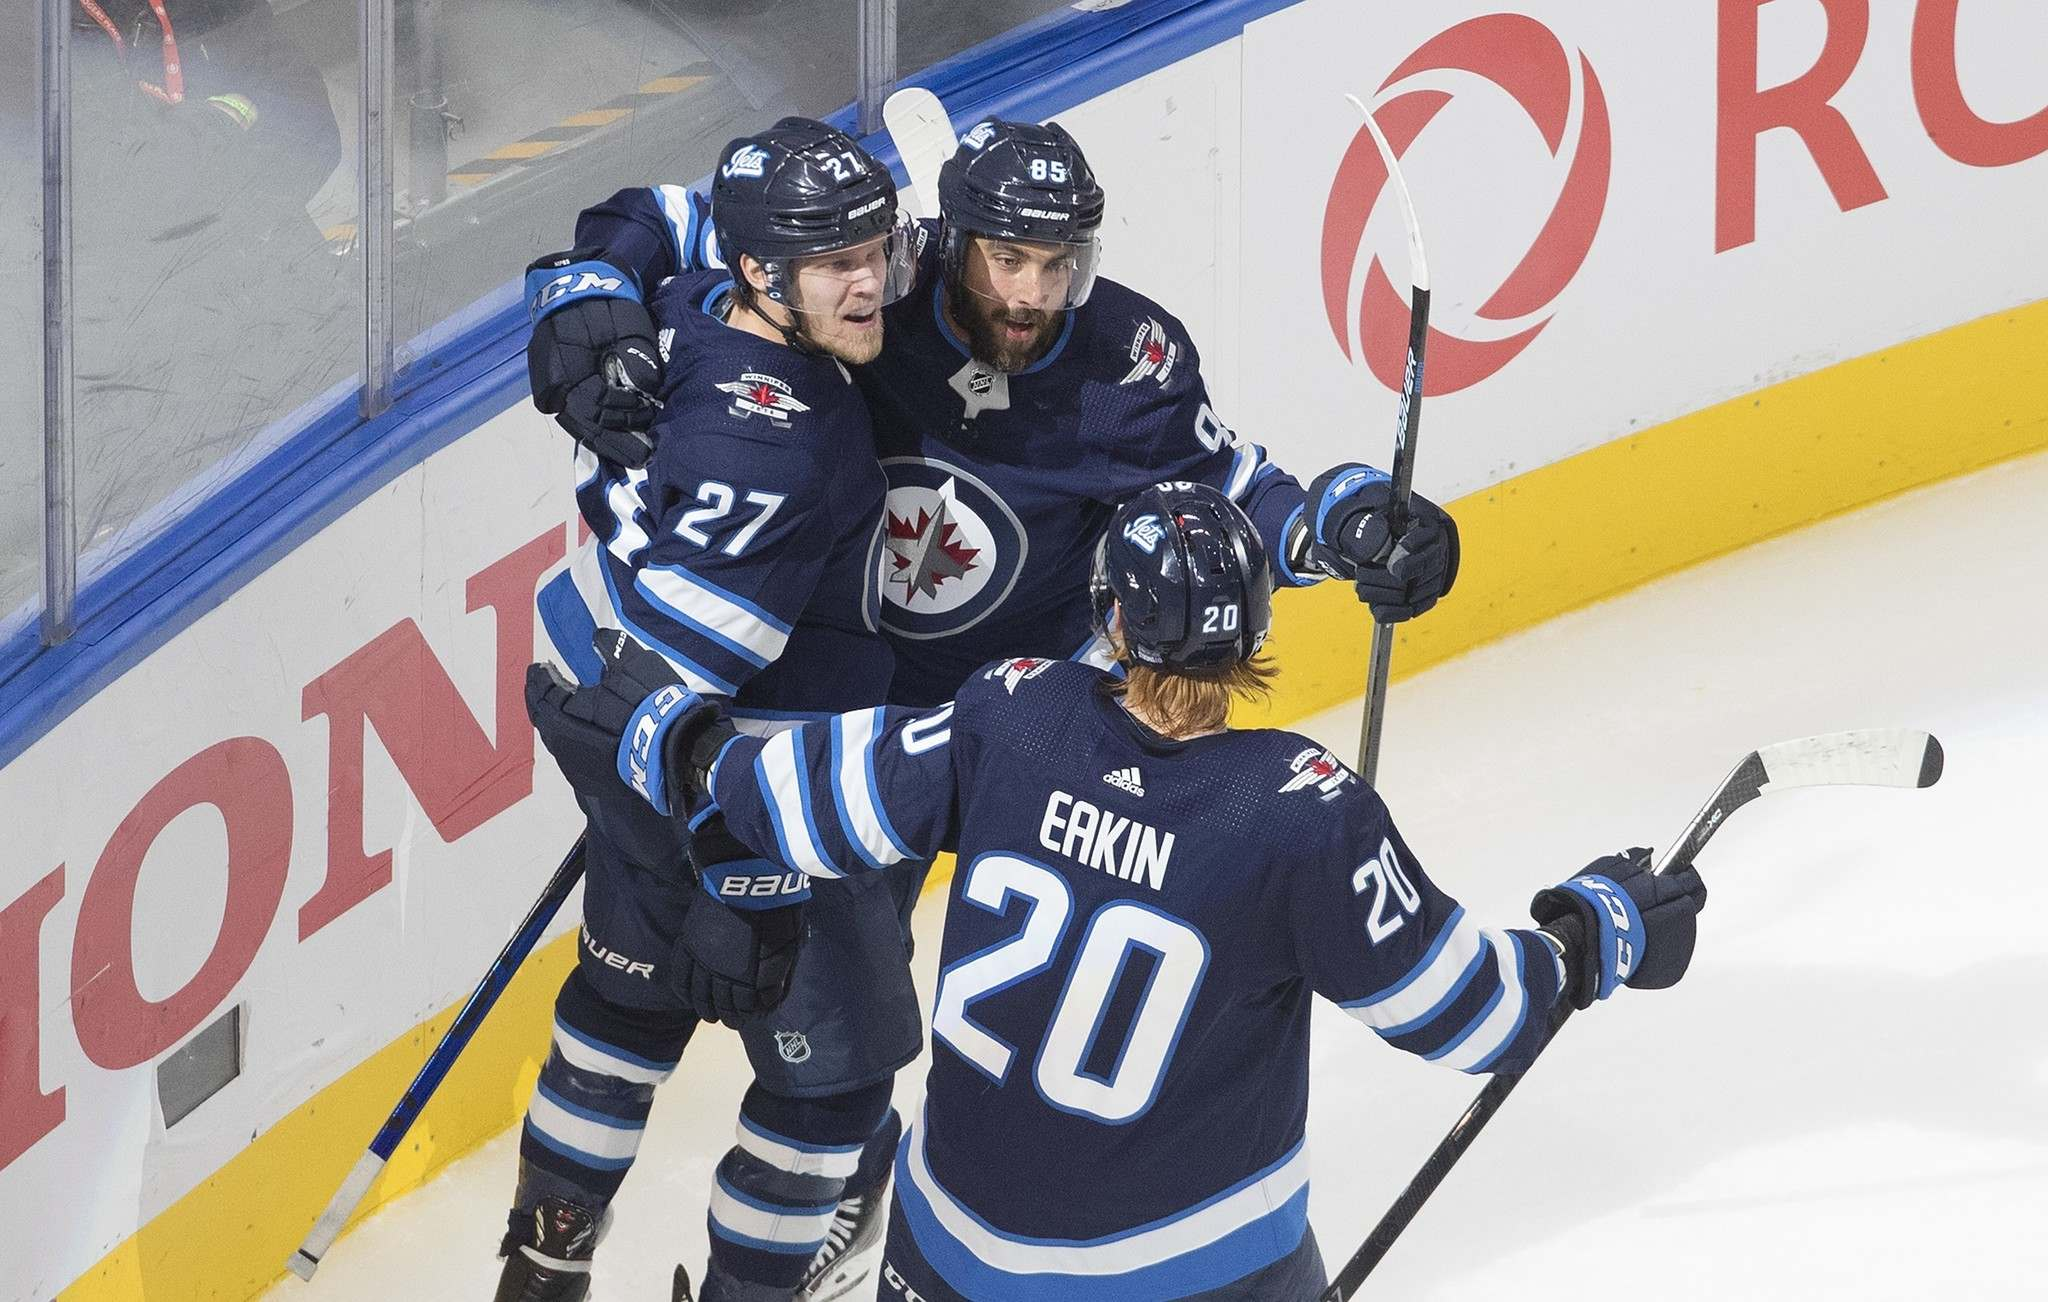 Jets forwards Nikolaj Ehlers, Mathieu Perreault and Cody Eakin, from left, celebrate a goal against the Flames during Tuesday's Game 4 loss. (Jason Franson / The Canadian Press files)</p></p>